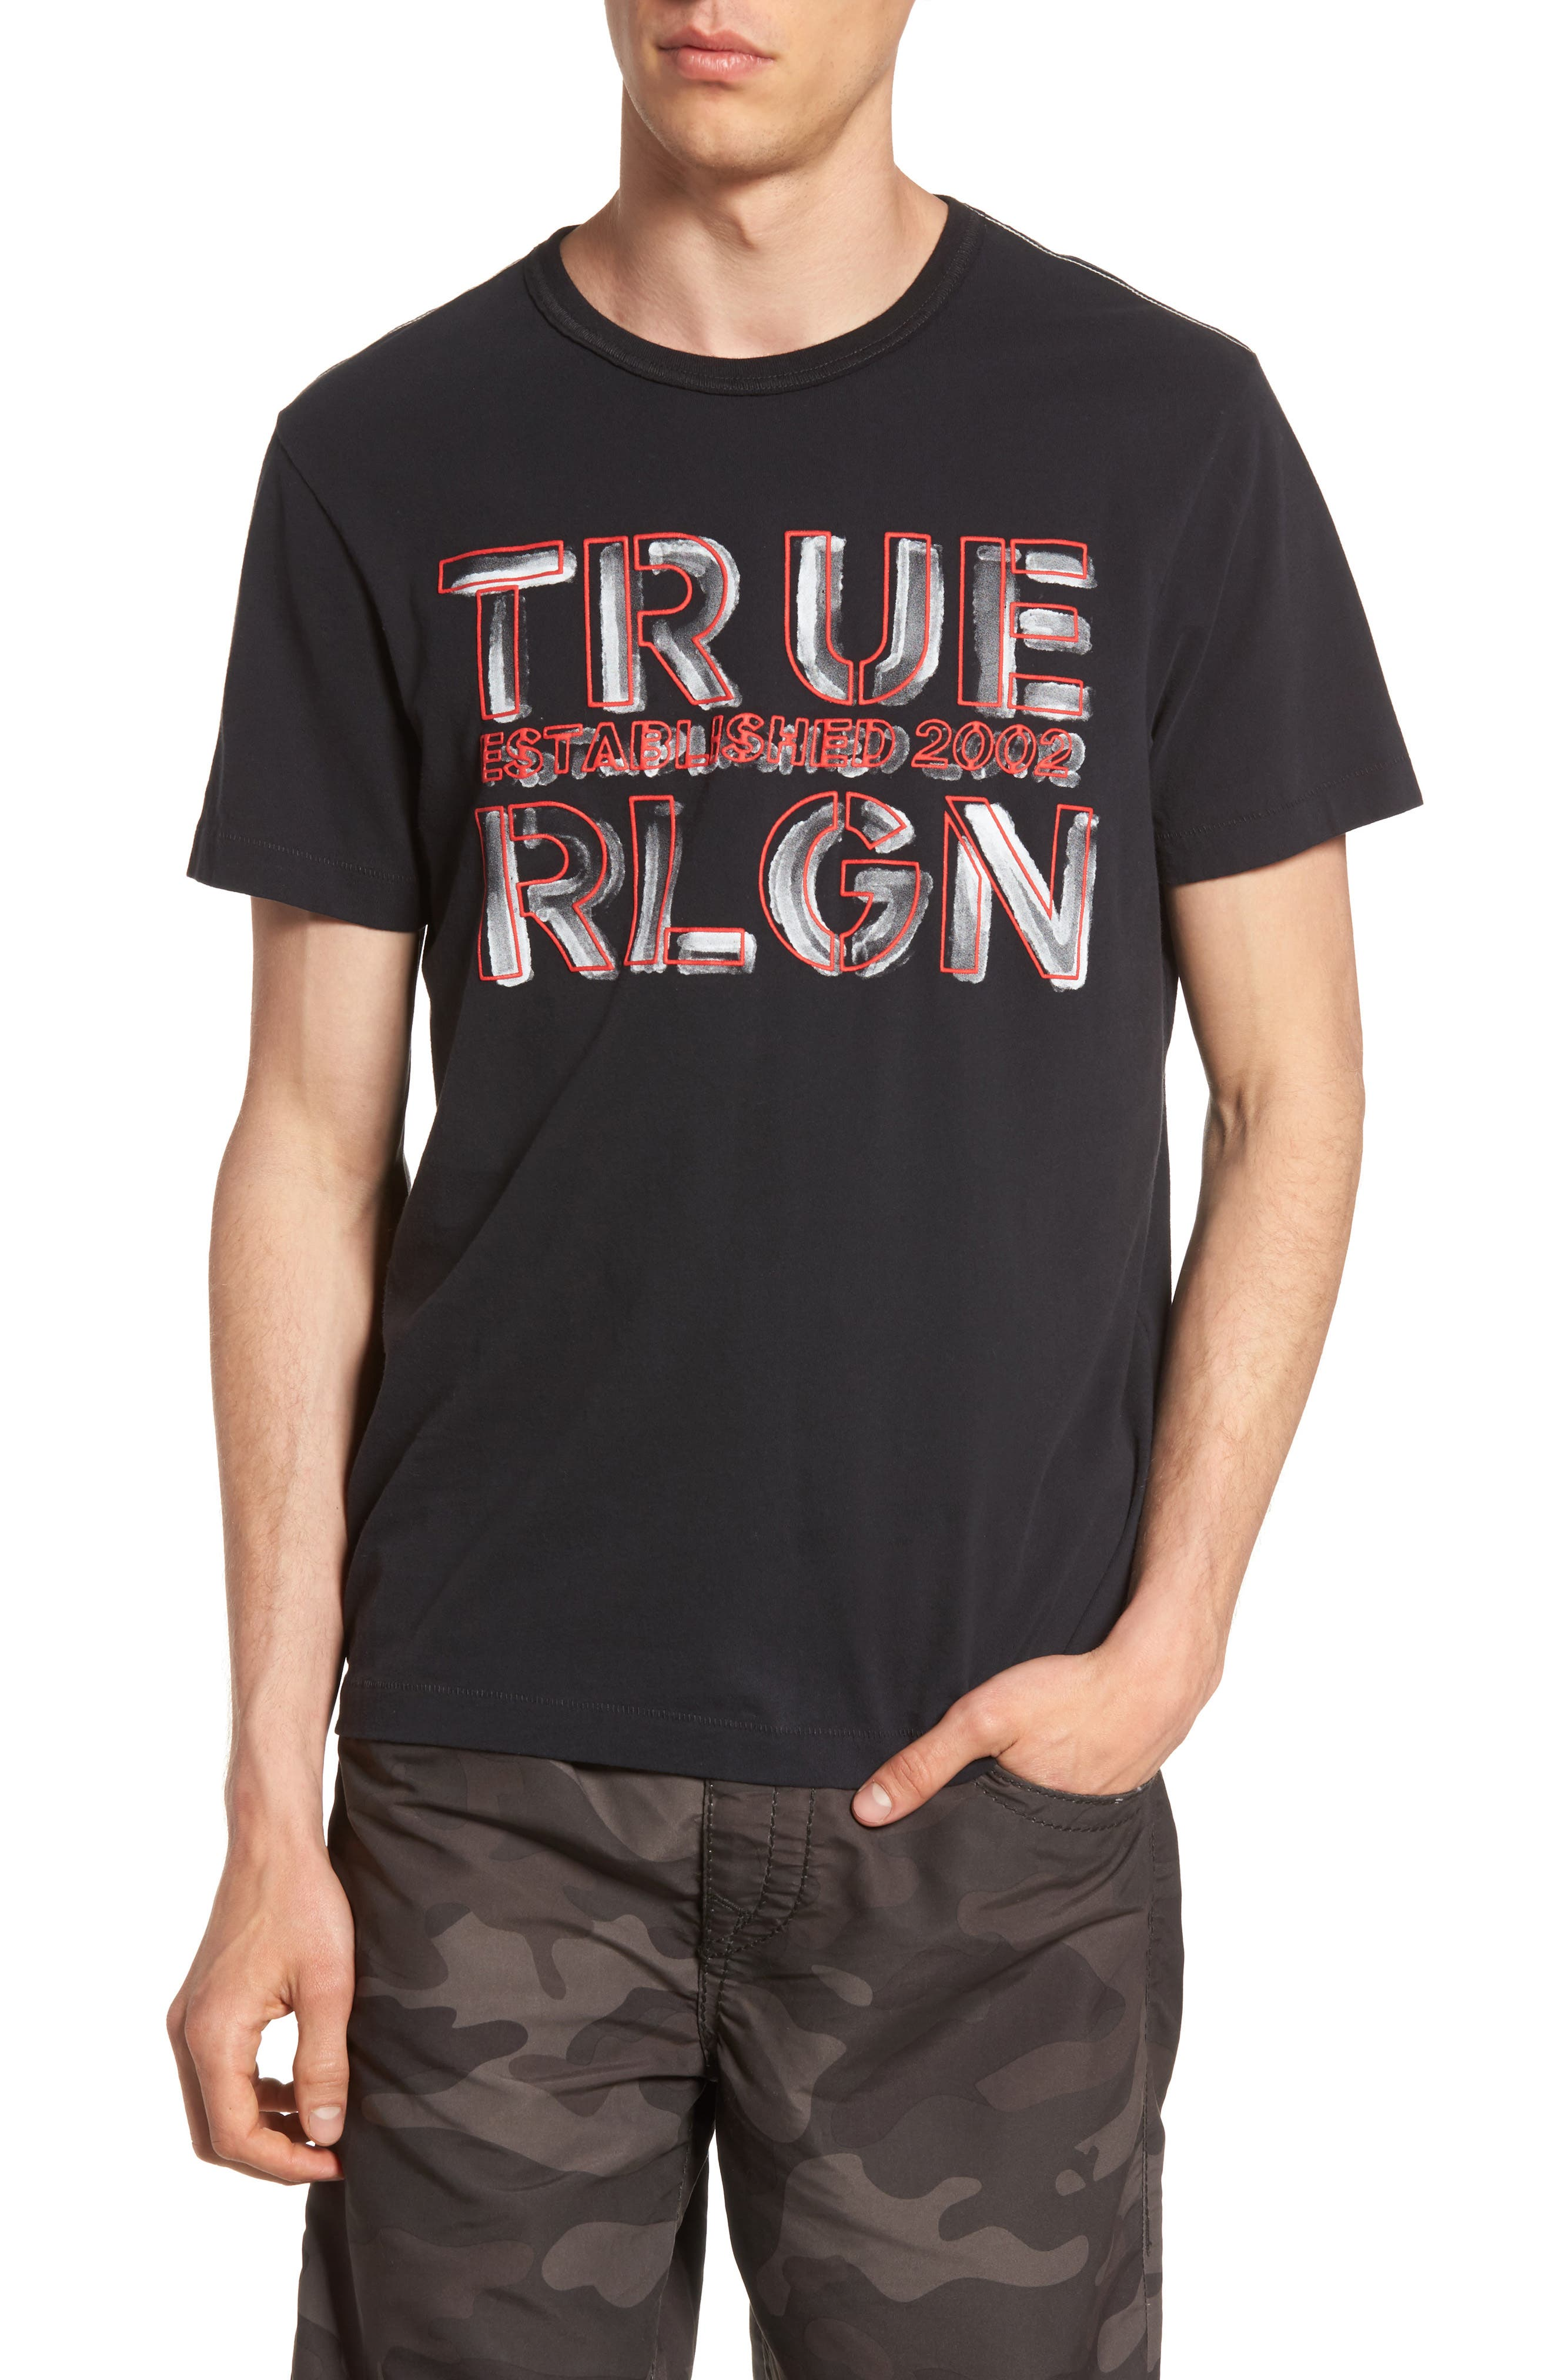 True Religion Brand Jeans Established Logo T-Shirt